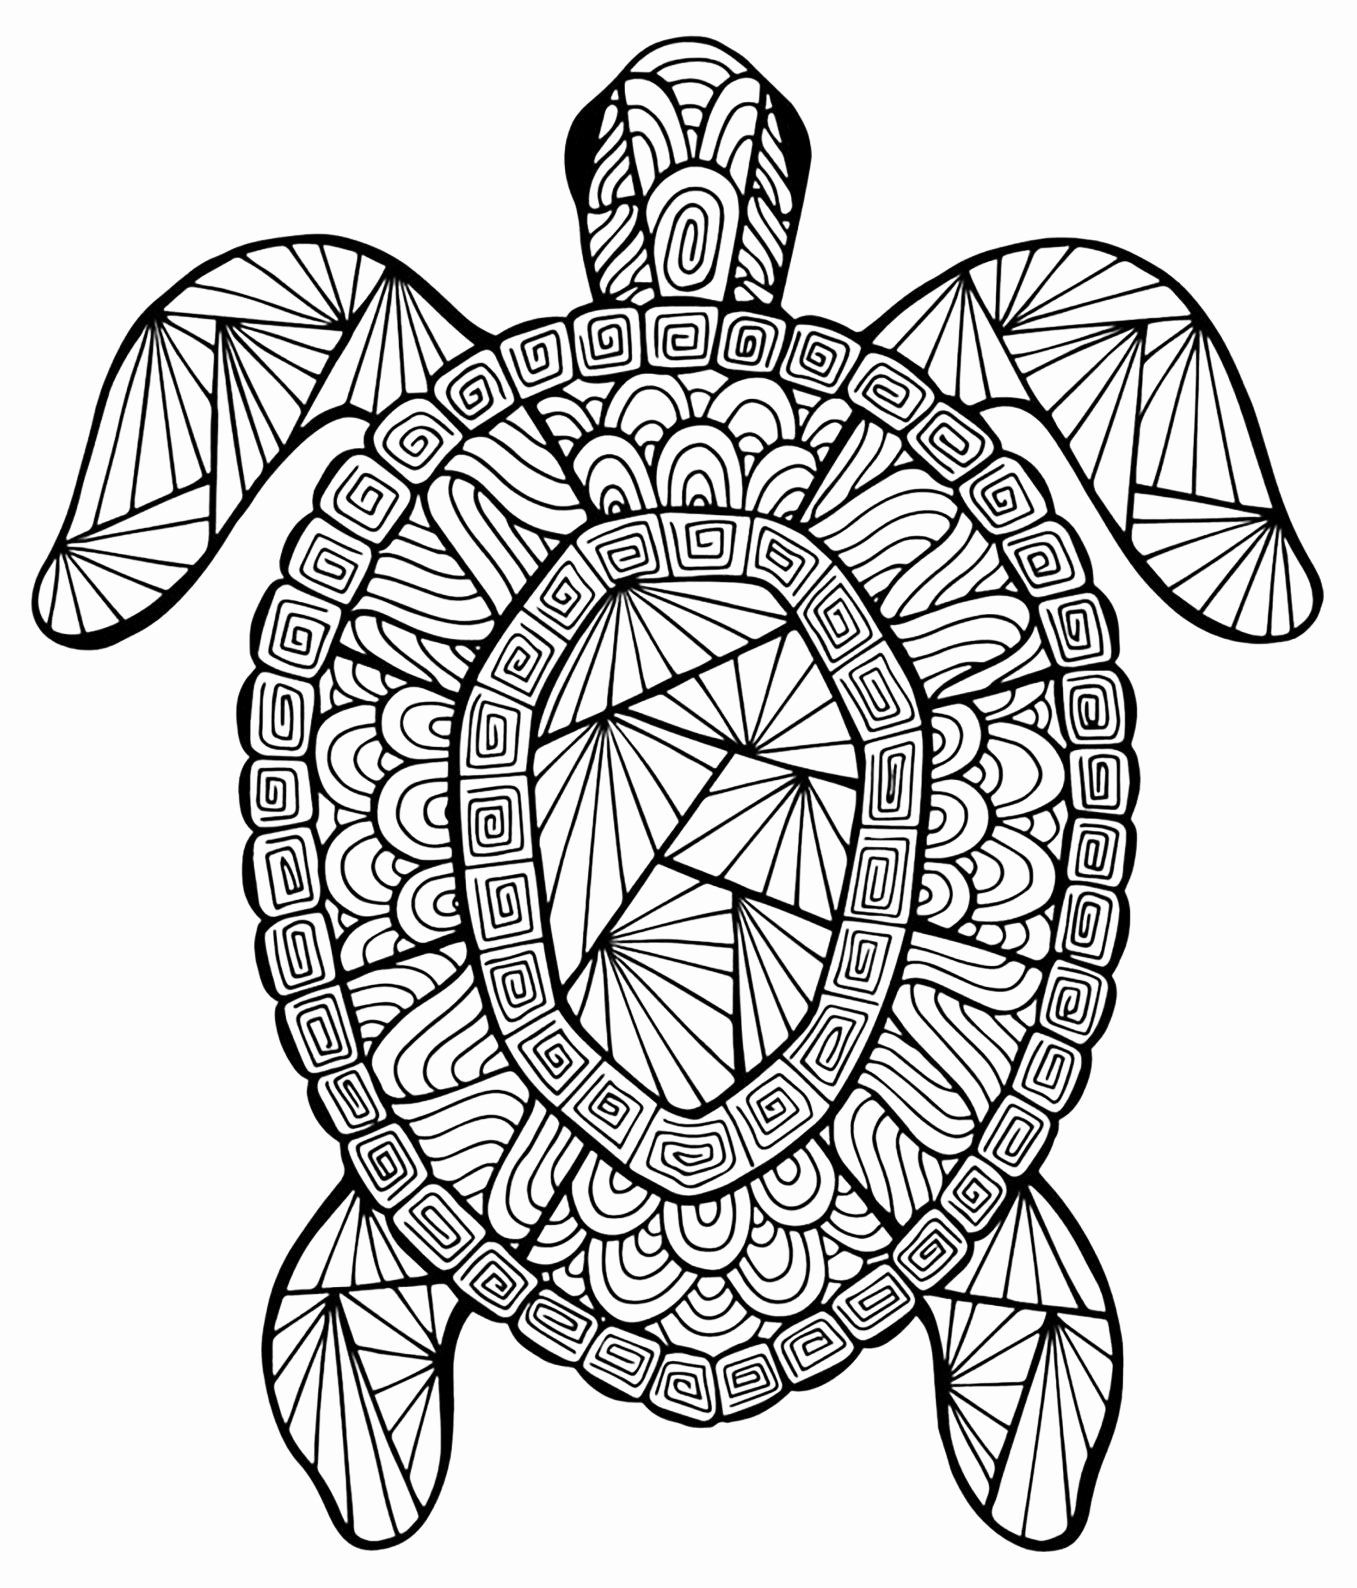 27 Animal Mandala Coloring Book In 2020 Turtle Coloring Pages